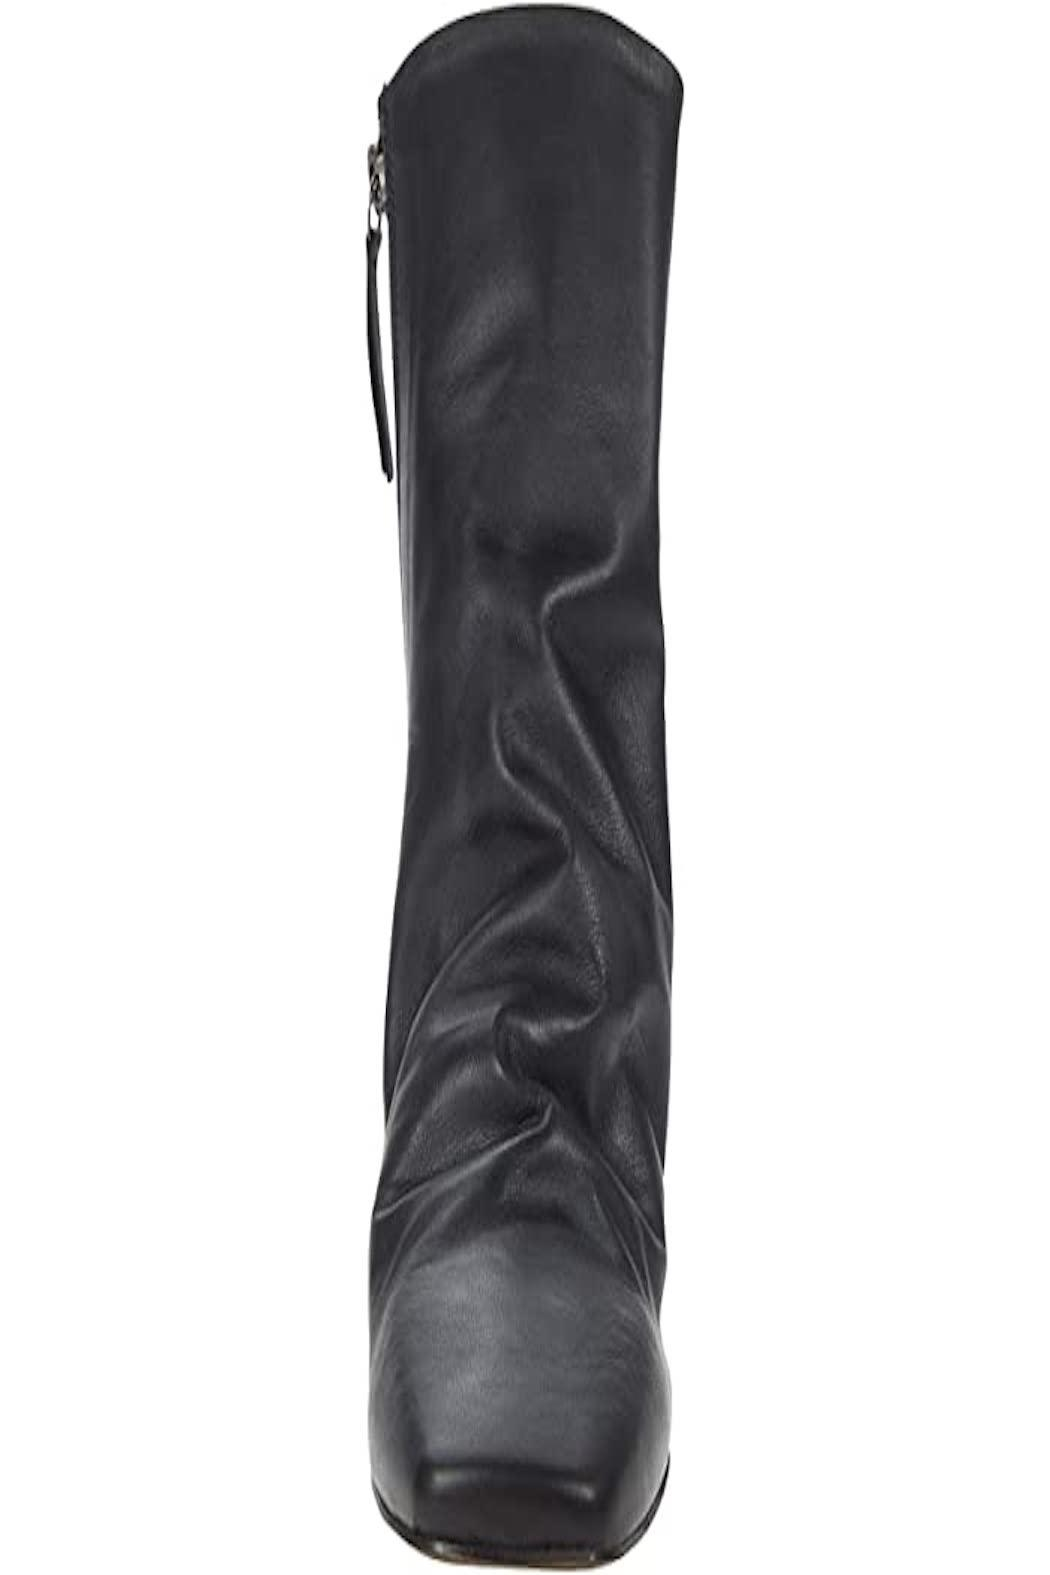 Free People Cybill Heel Boots - Front Full Image